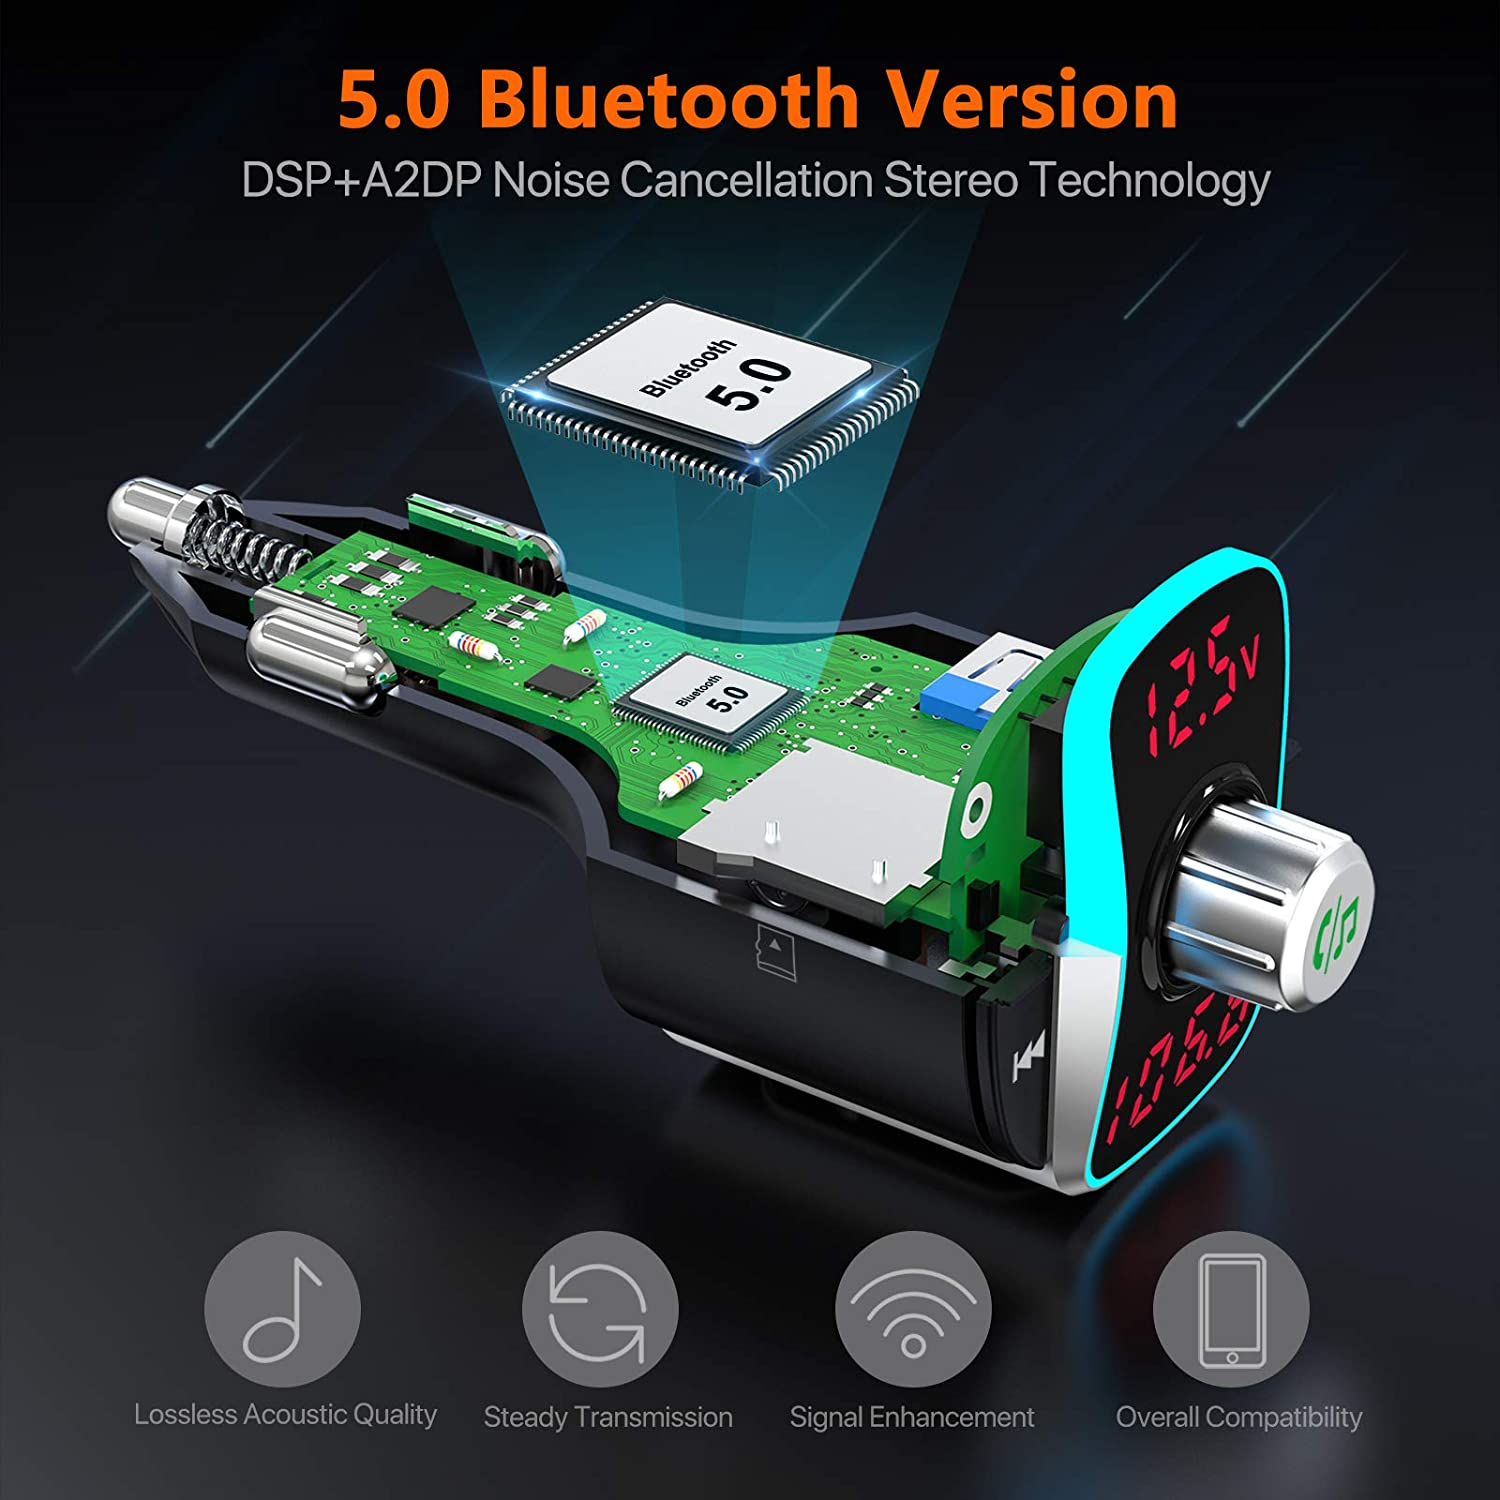 FM Transmitter for Car : Dual Screen Display QC3.0 /& PD 18W Radio Adapter Music Player//Car Kit with Hands-Free Calls Nulaxy Bluetooth 5.0 Car Adapter Siri Google Assistant NX14